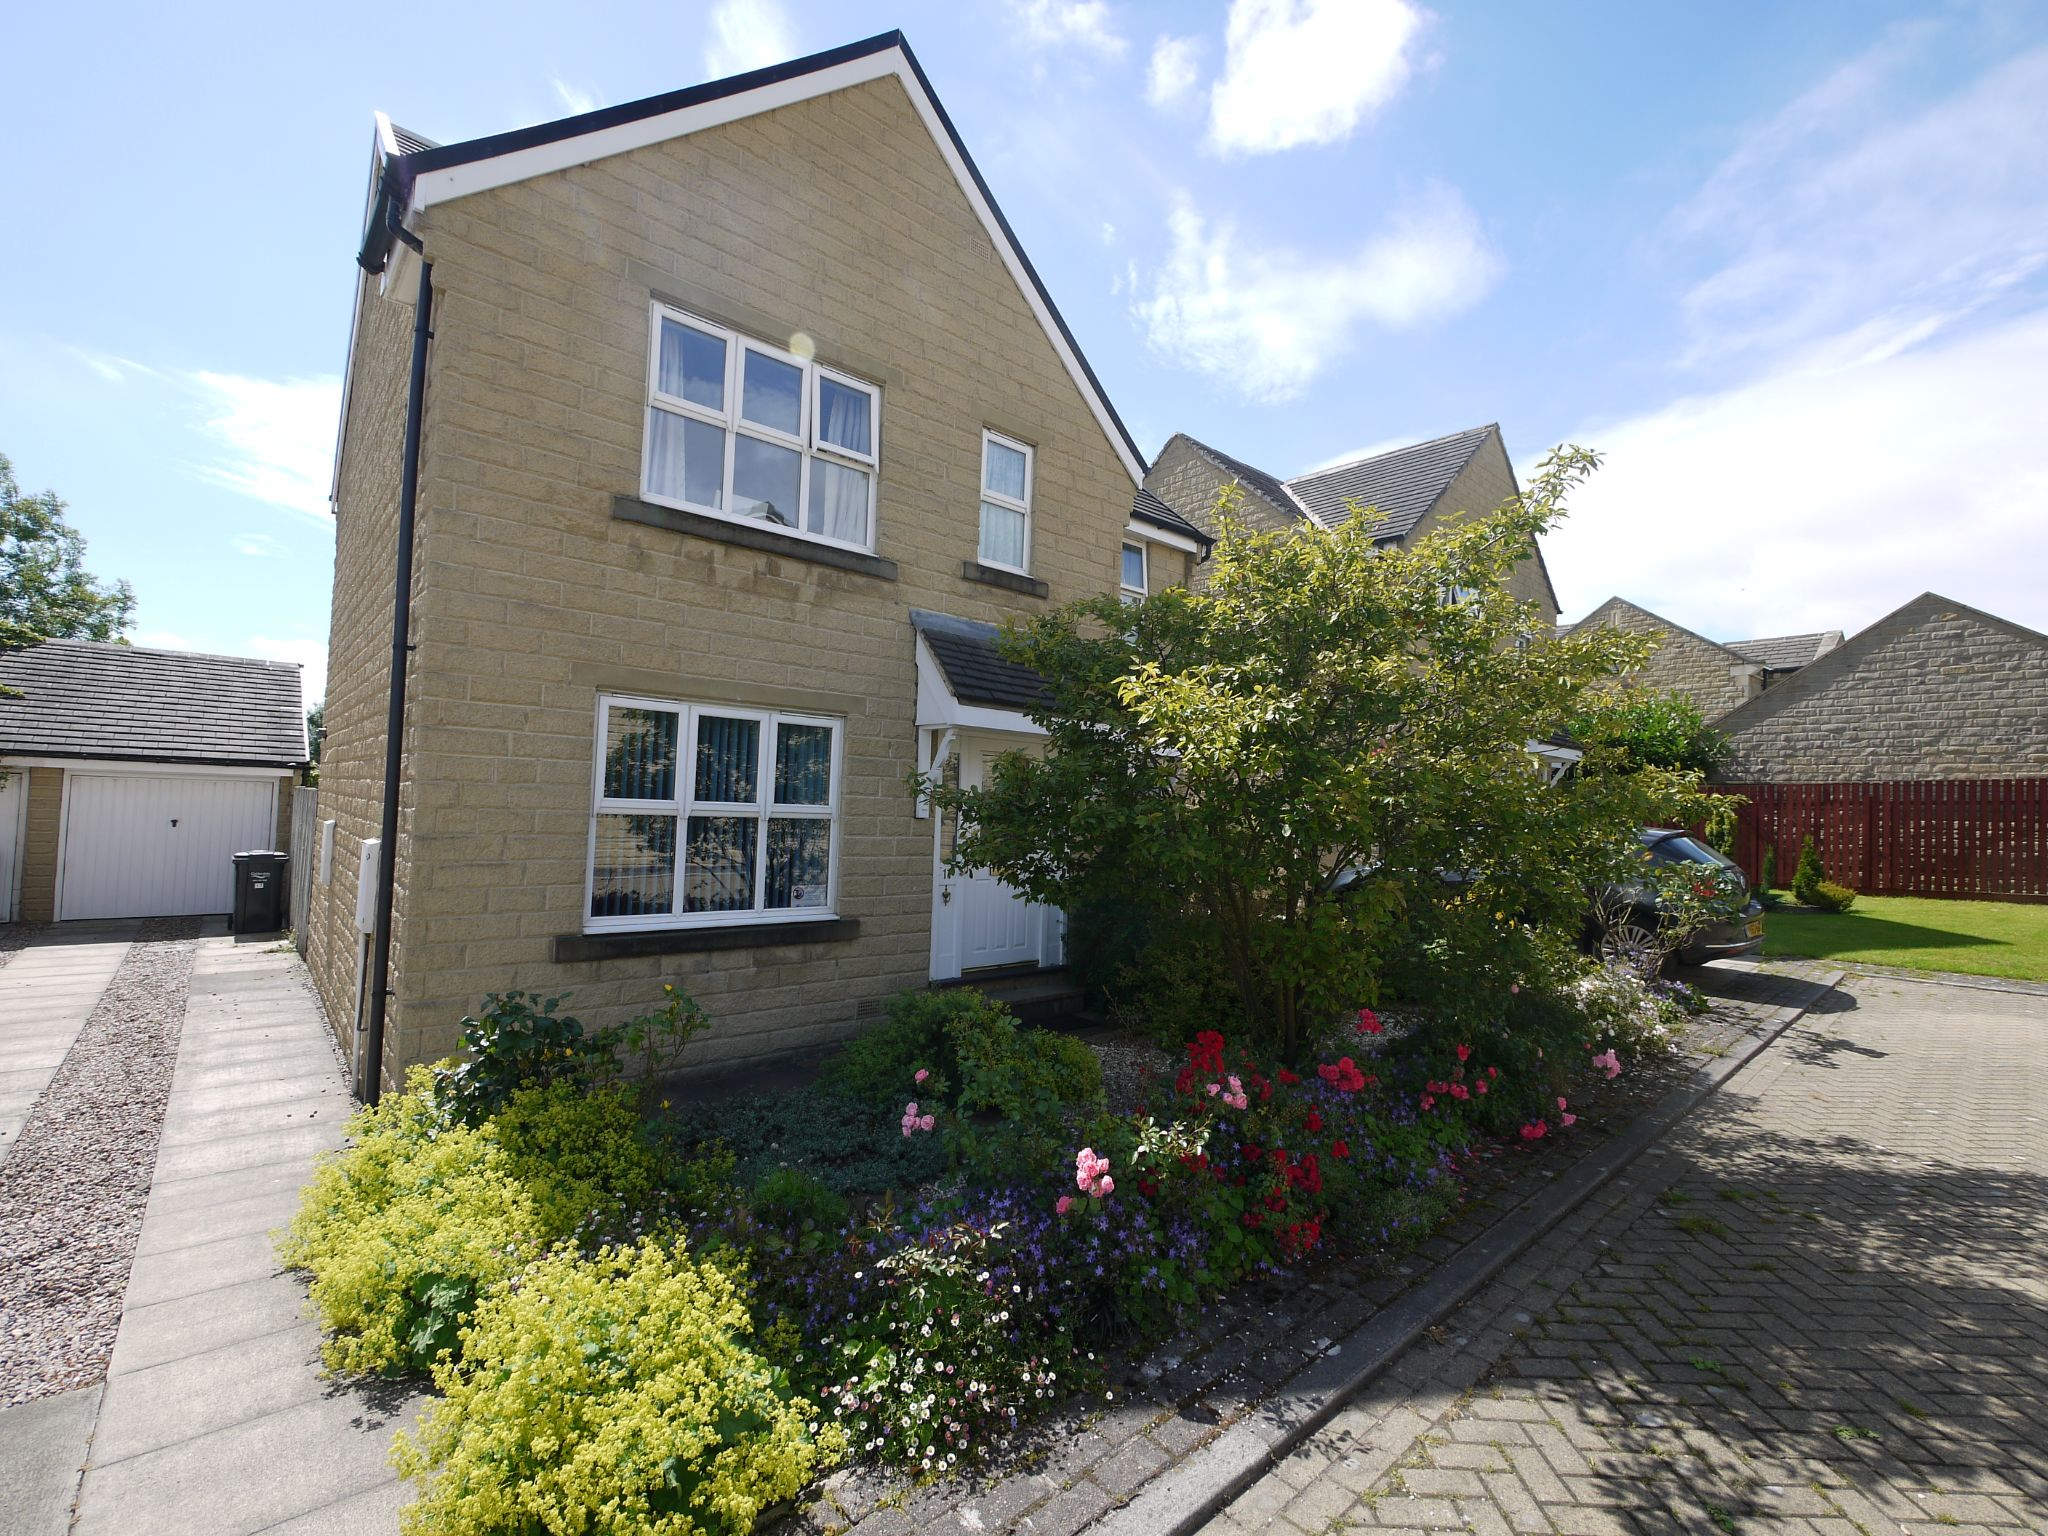 4 bedroom detached house SSTC in Halifax - Main.